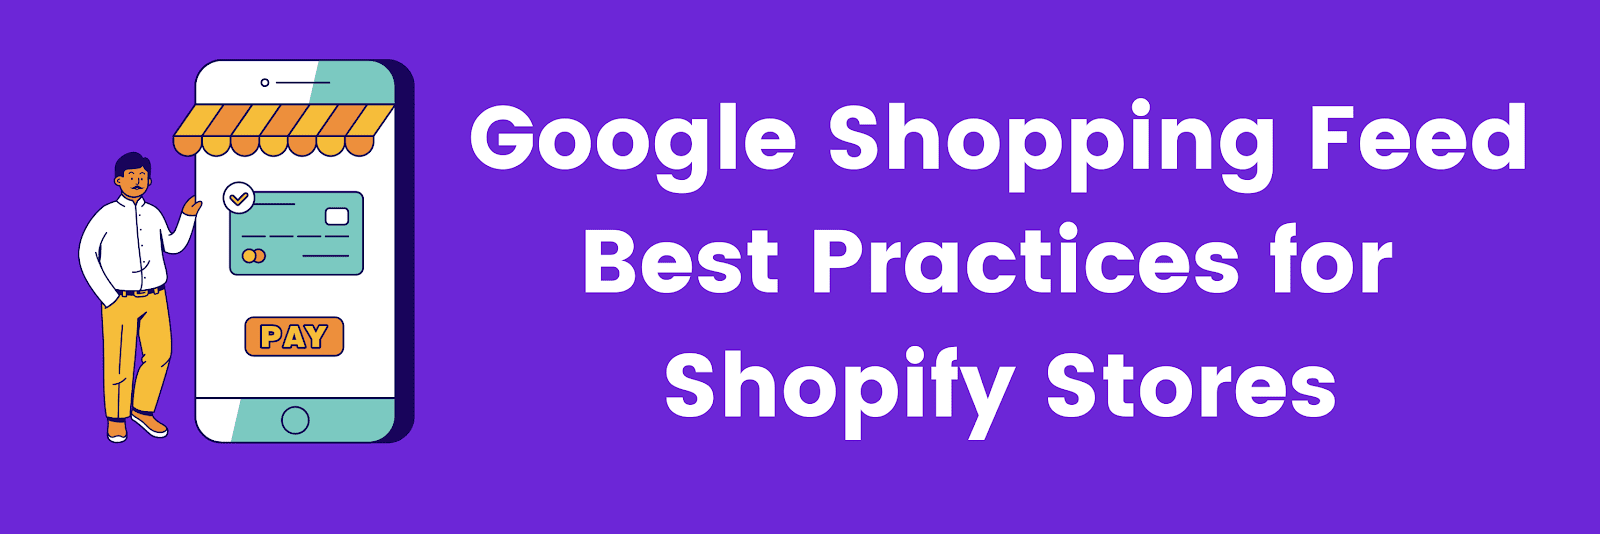 Google Shopping Feed Best Practices for Shopify Stores